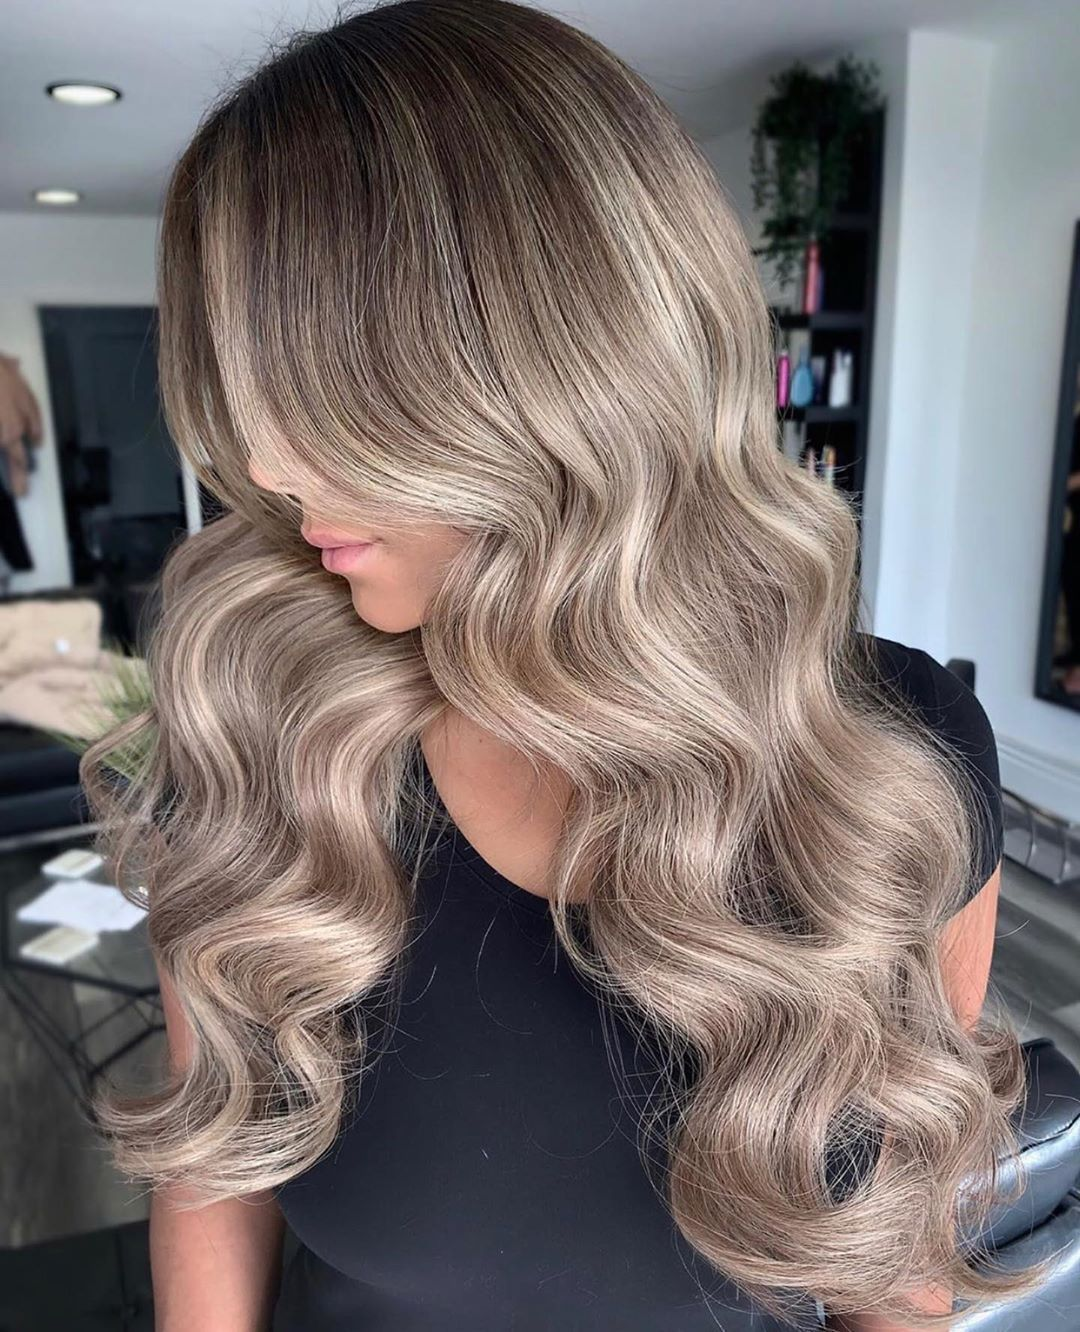 Beauty Works Hair Extensions On Instagram Blend On 2 X 20 Celebrity Choice Wefts In Shades Oak And Boh Beauty Works Hair Extensions Beauty Works Hair